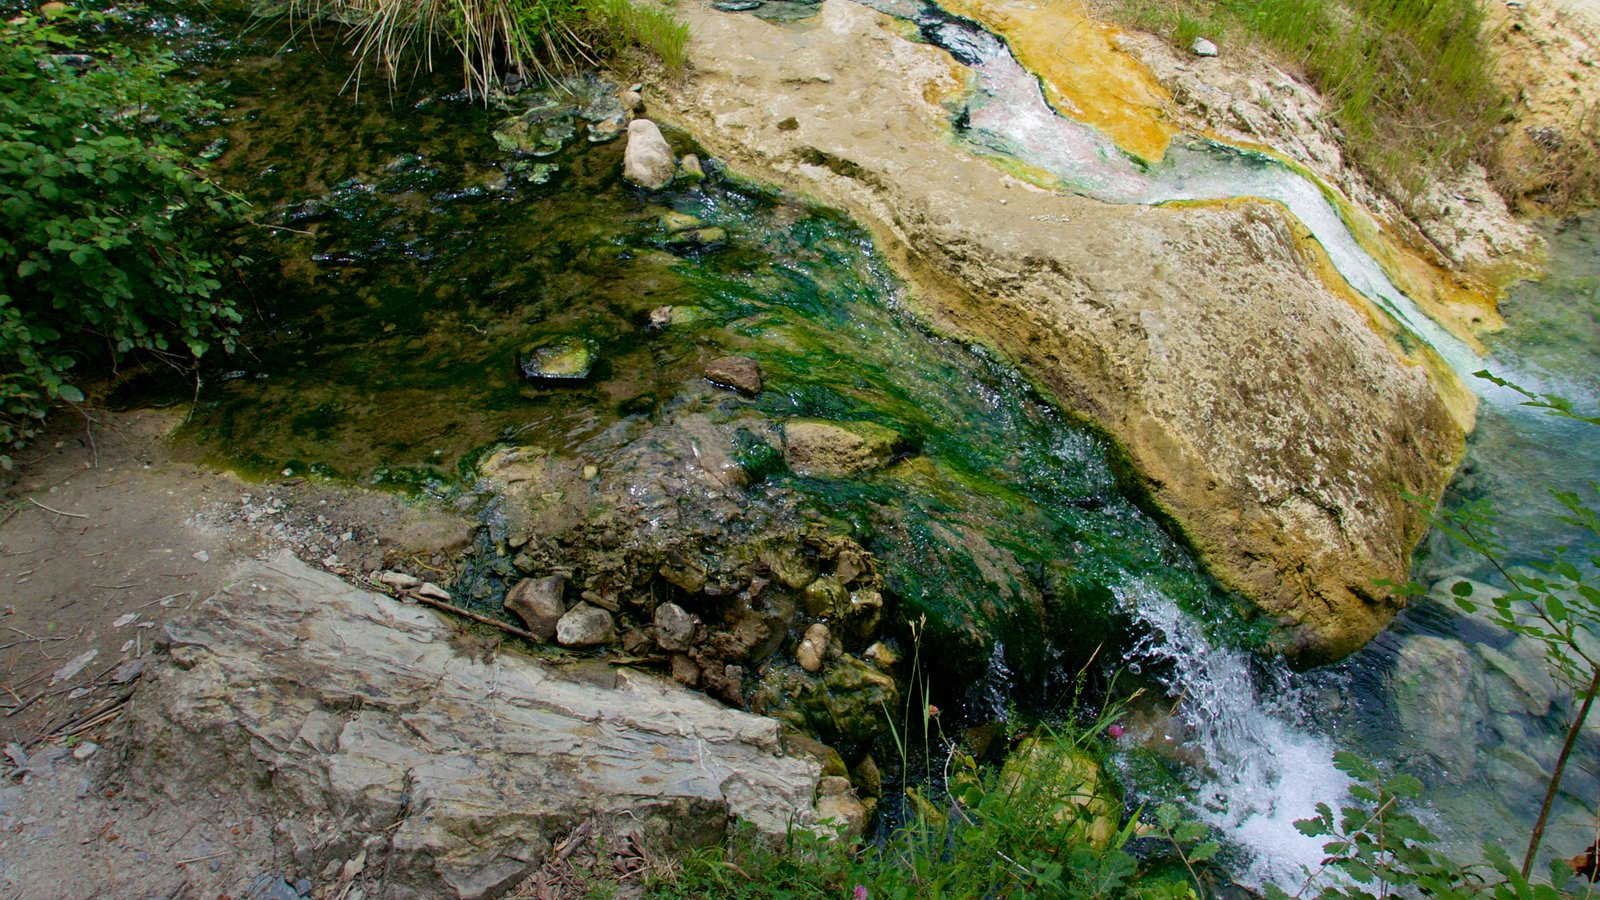 Nature Pictures: View Images of Bagni San Filippo